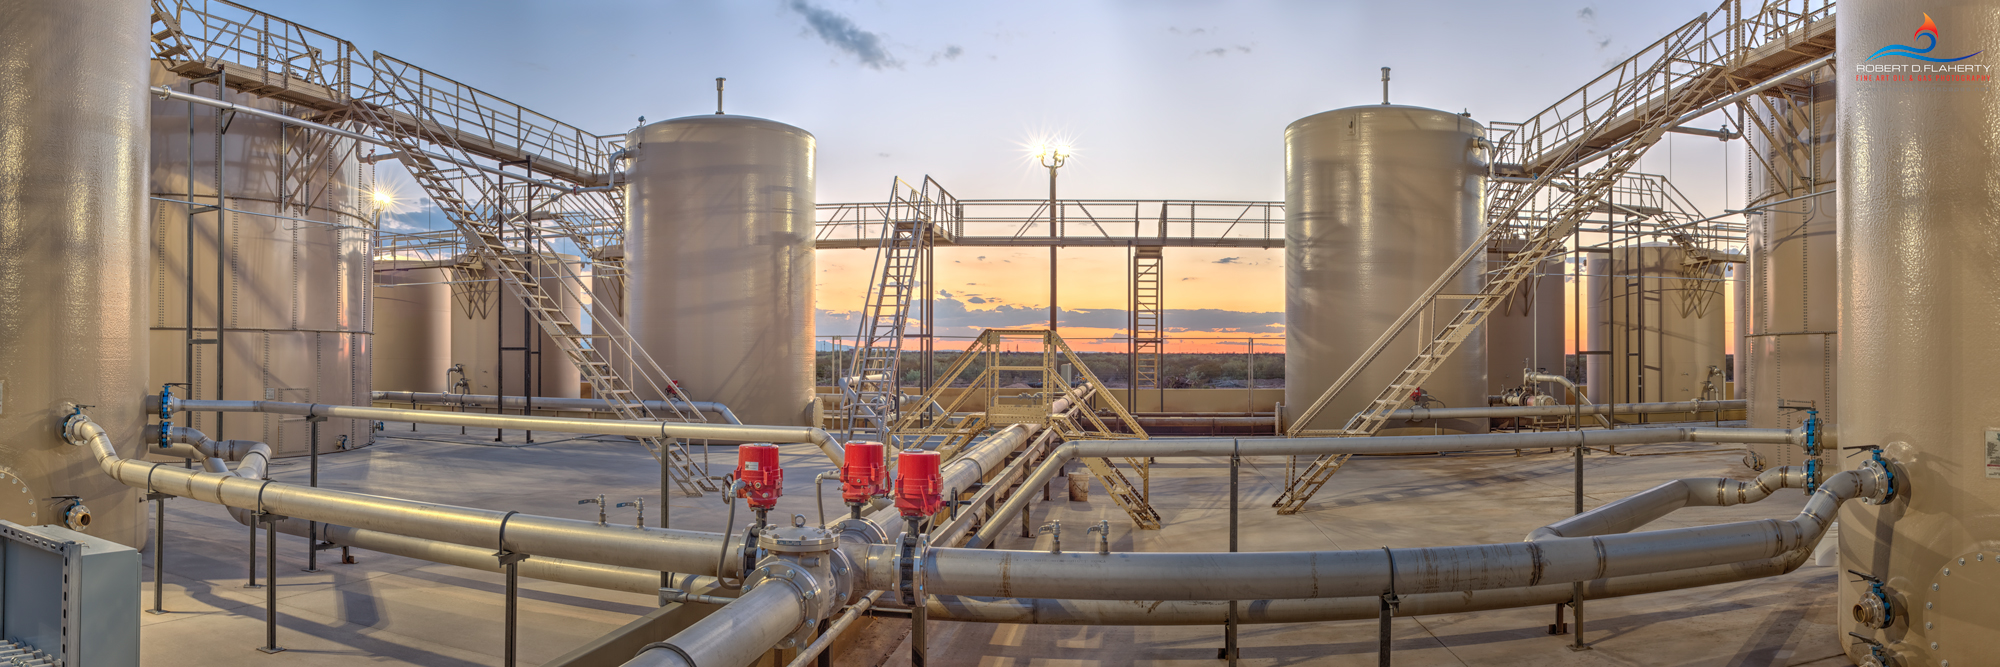 SWD, saltwater disposal unit, Delaware Basin, panorama, Permian Basin, Summer, midstream, Texas, photo